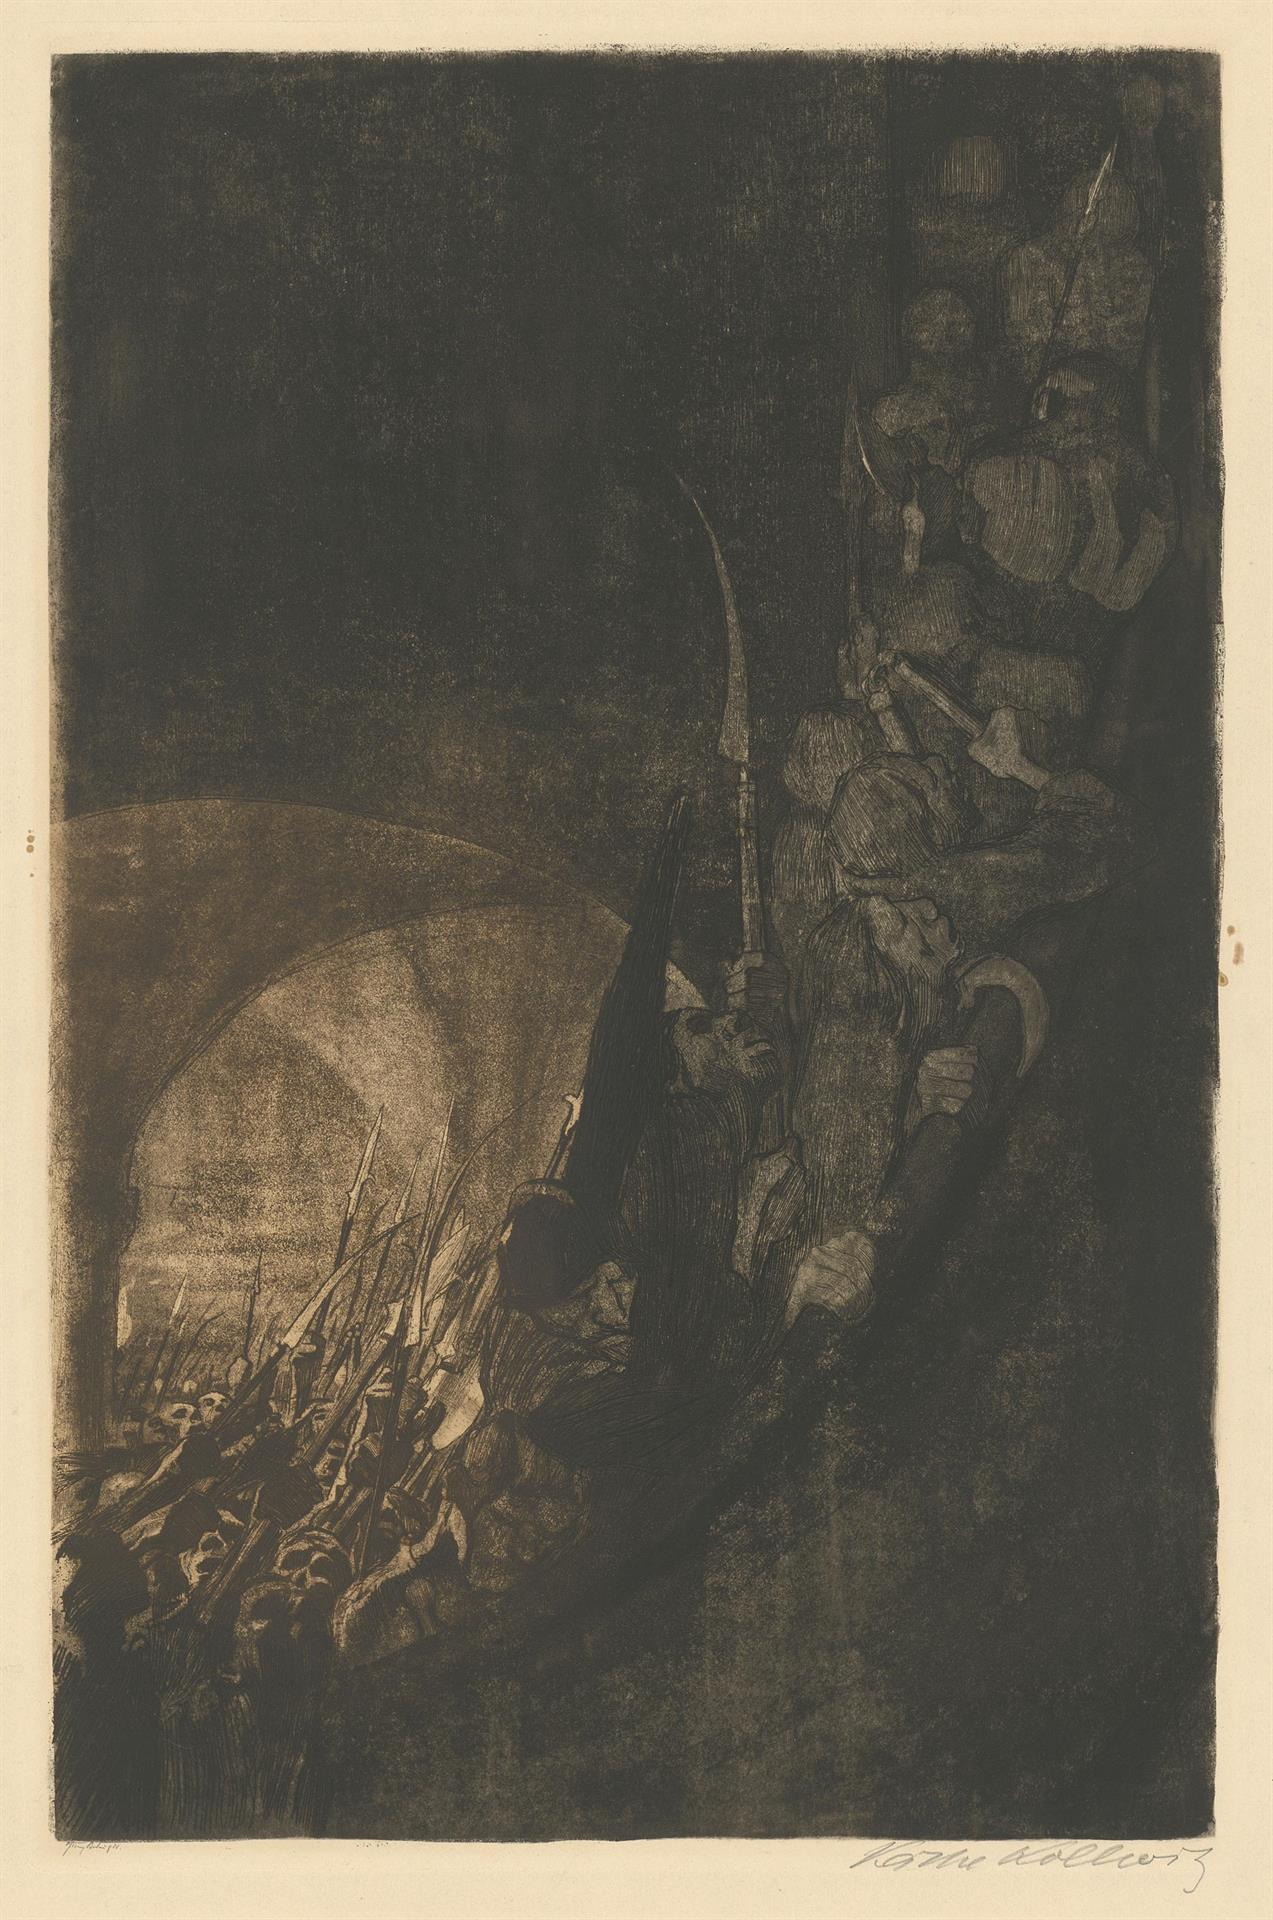 Käthe Kollwitz, Arming in a Vault, sheet 4 of the cycle »Peasants War«, 1906, bicolour etching with line etching, drypoint, aquatint and soft ground with imprint of Ziegler's transfer paper, Kn 96 VI, Cologne Kollwitz Collection © Käthe Kollwitz Museum Köln